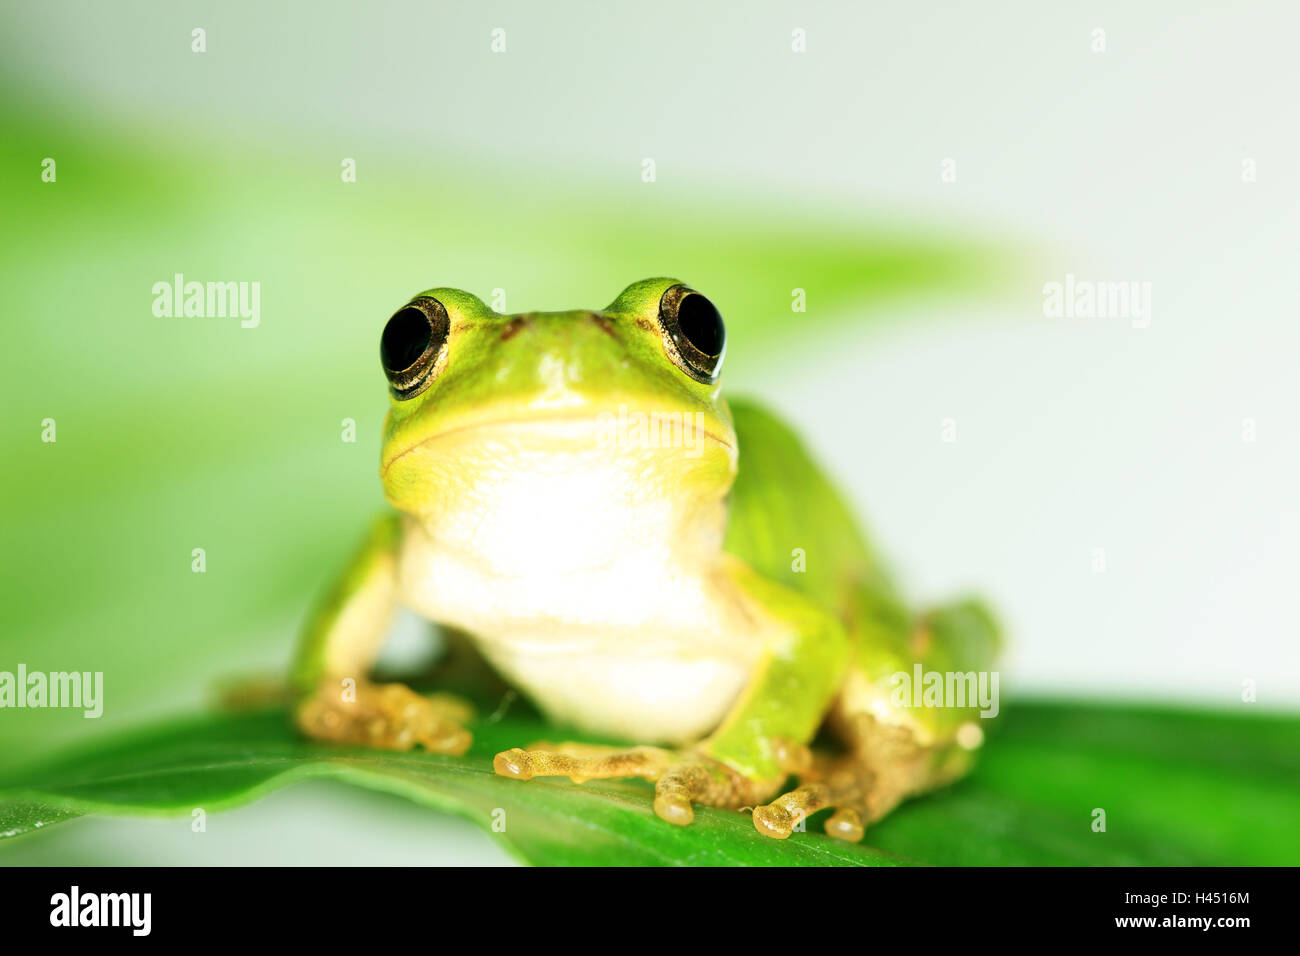 Leaves, tree frog, - Stock Image